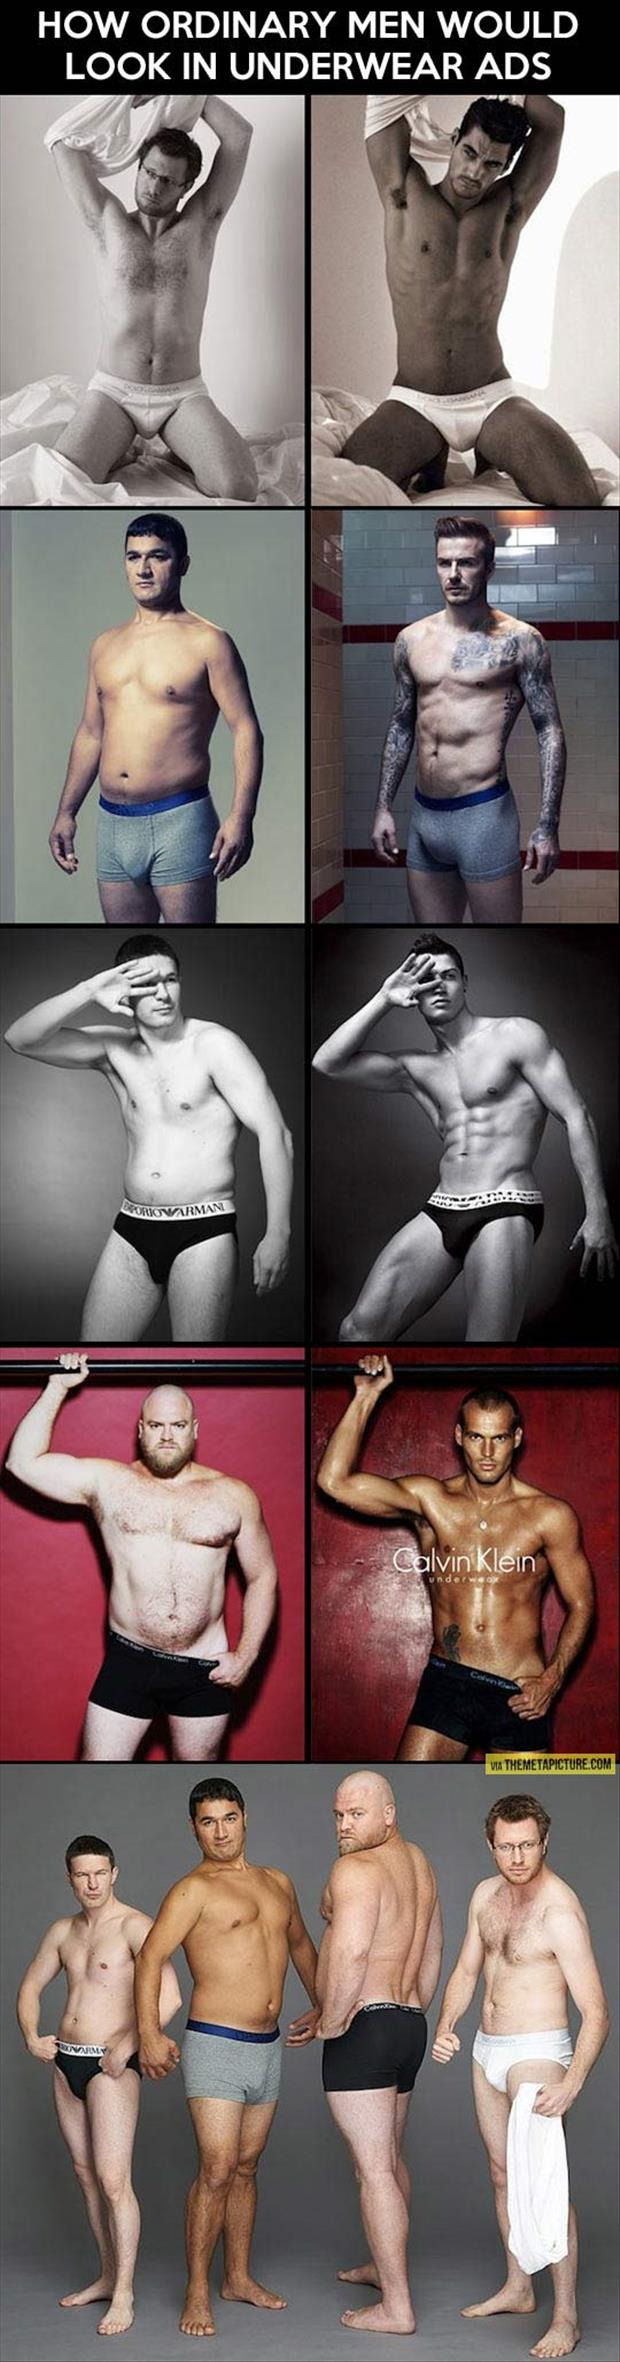 ordinary men in underware ads